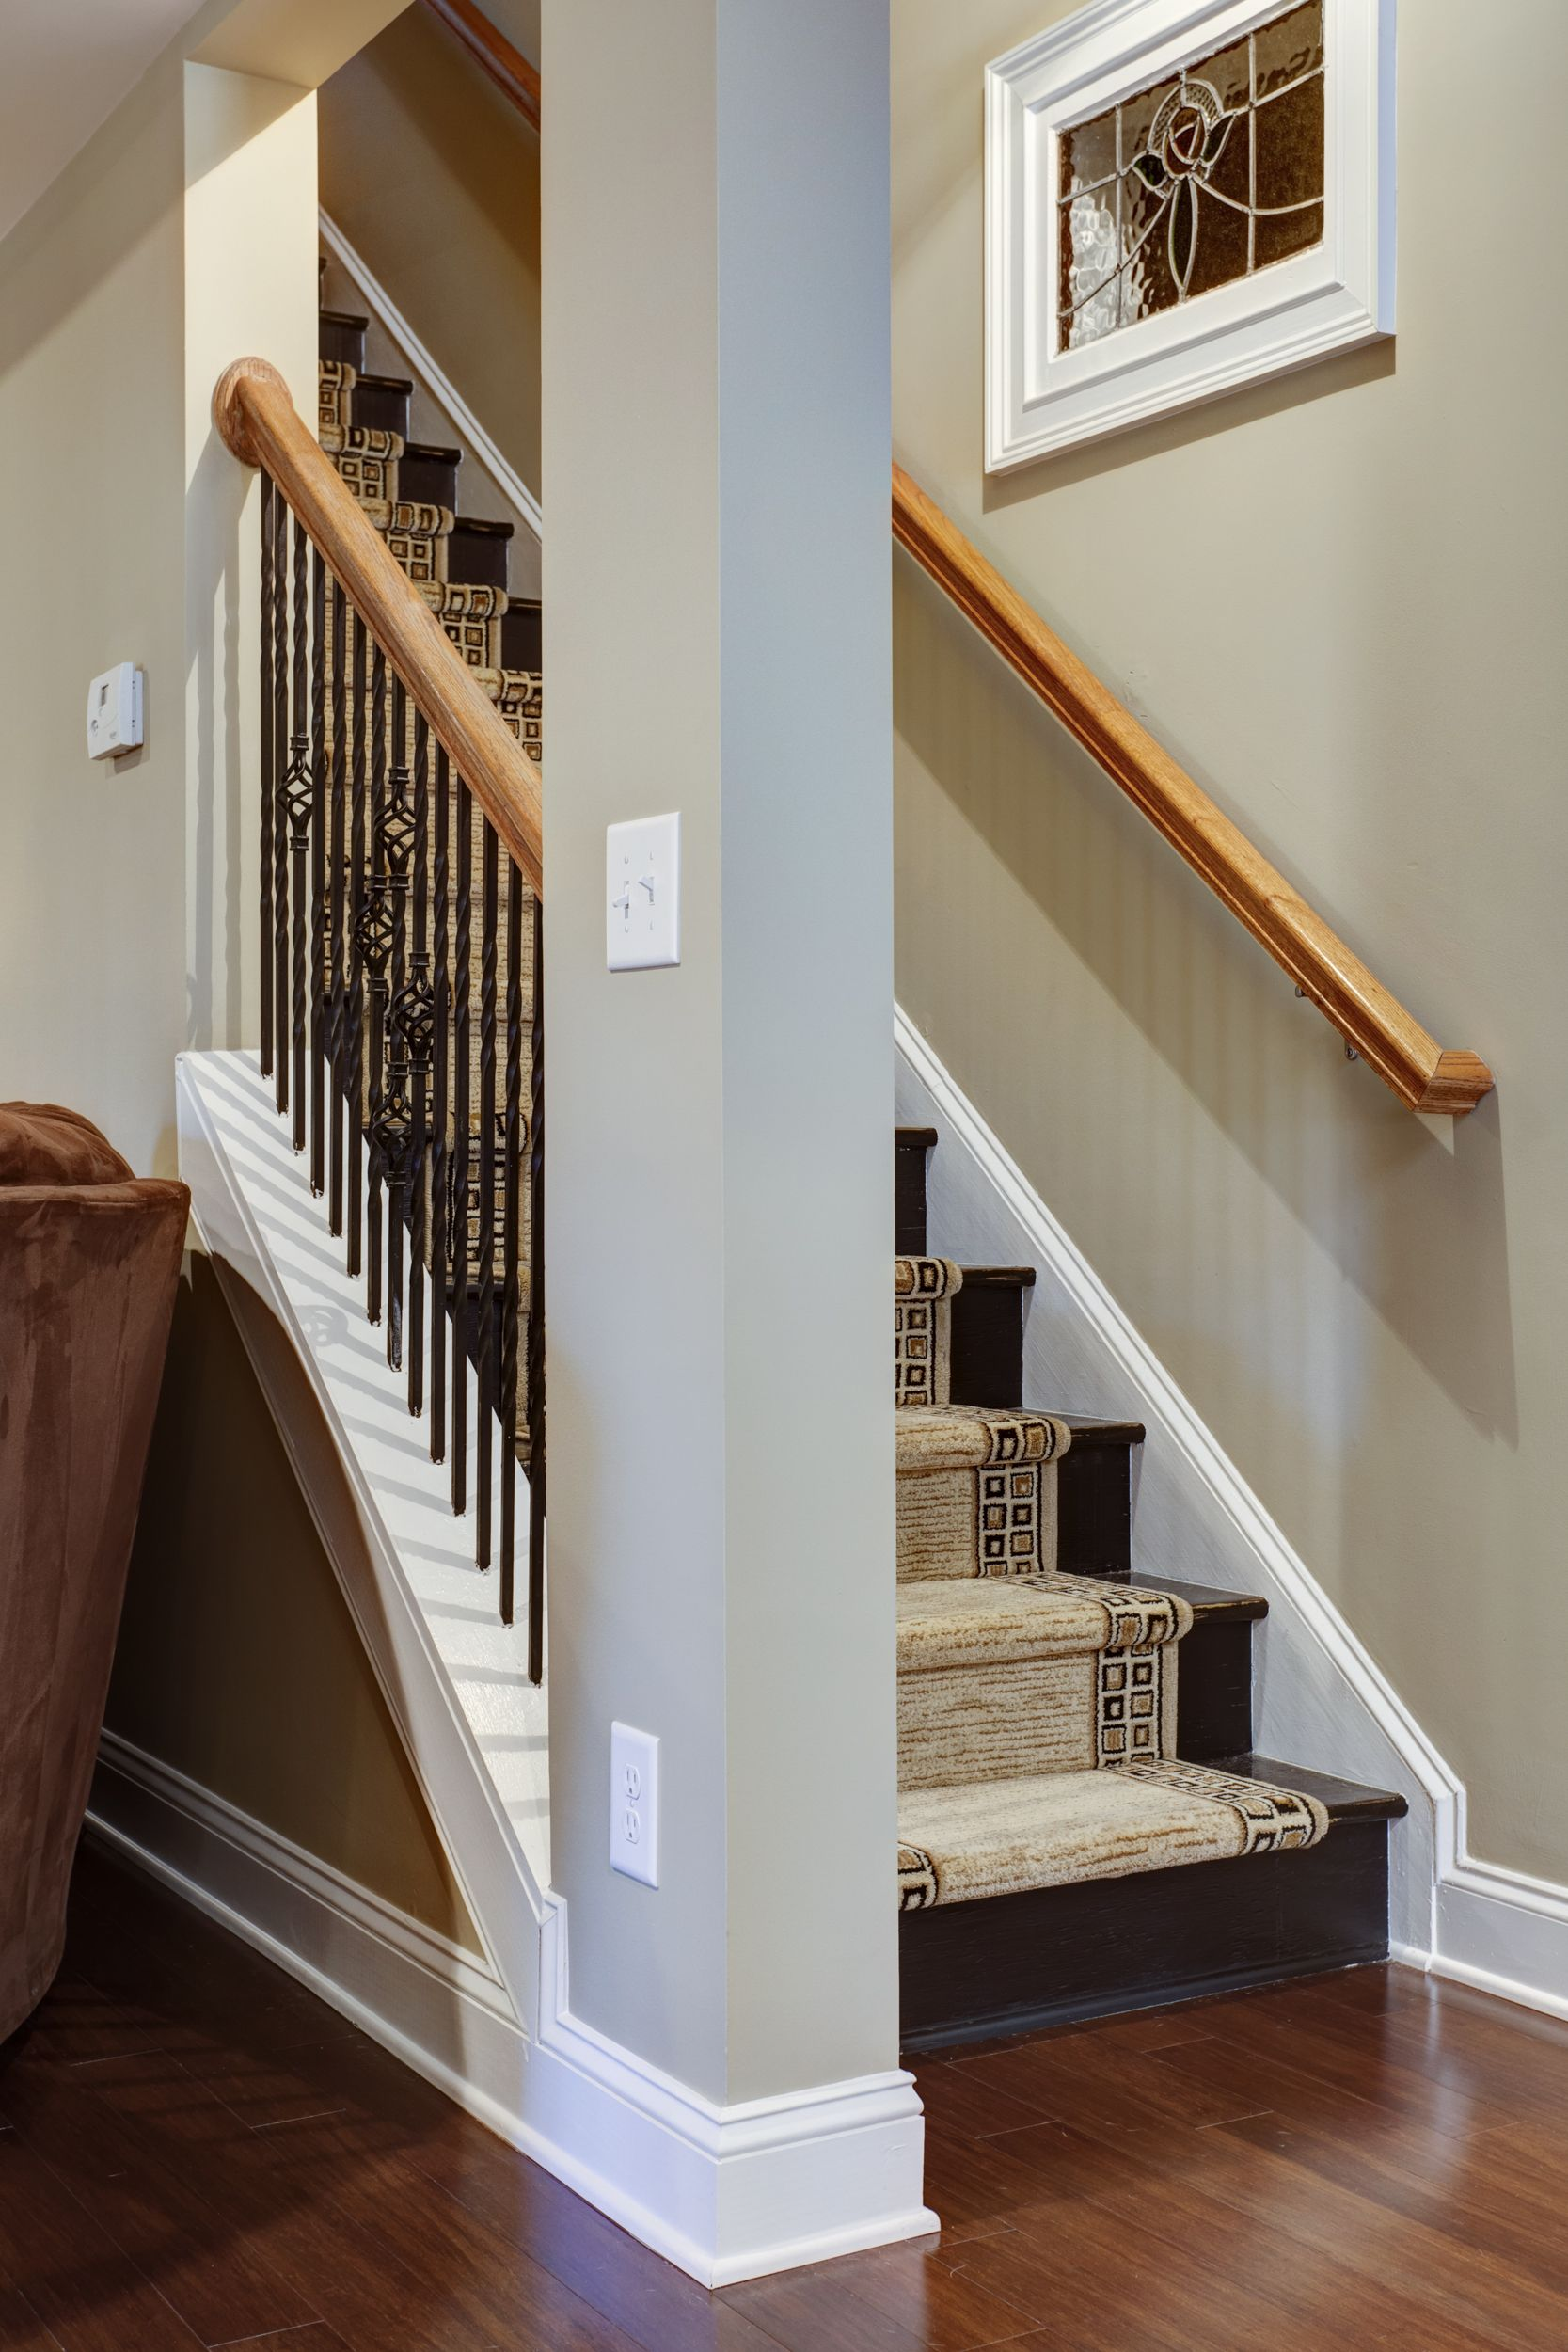 Basement Stairs Ideas: DIY Inexpensive Stairs In Basement. These Stairs Are